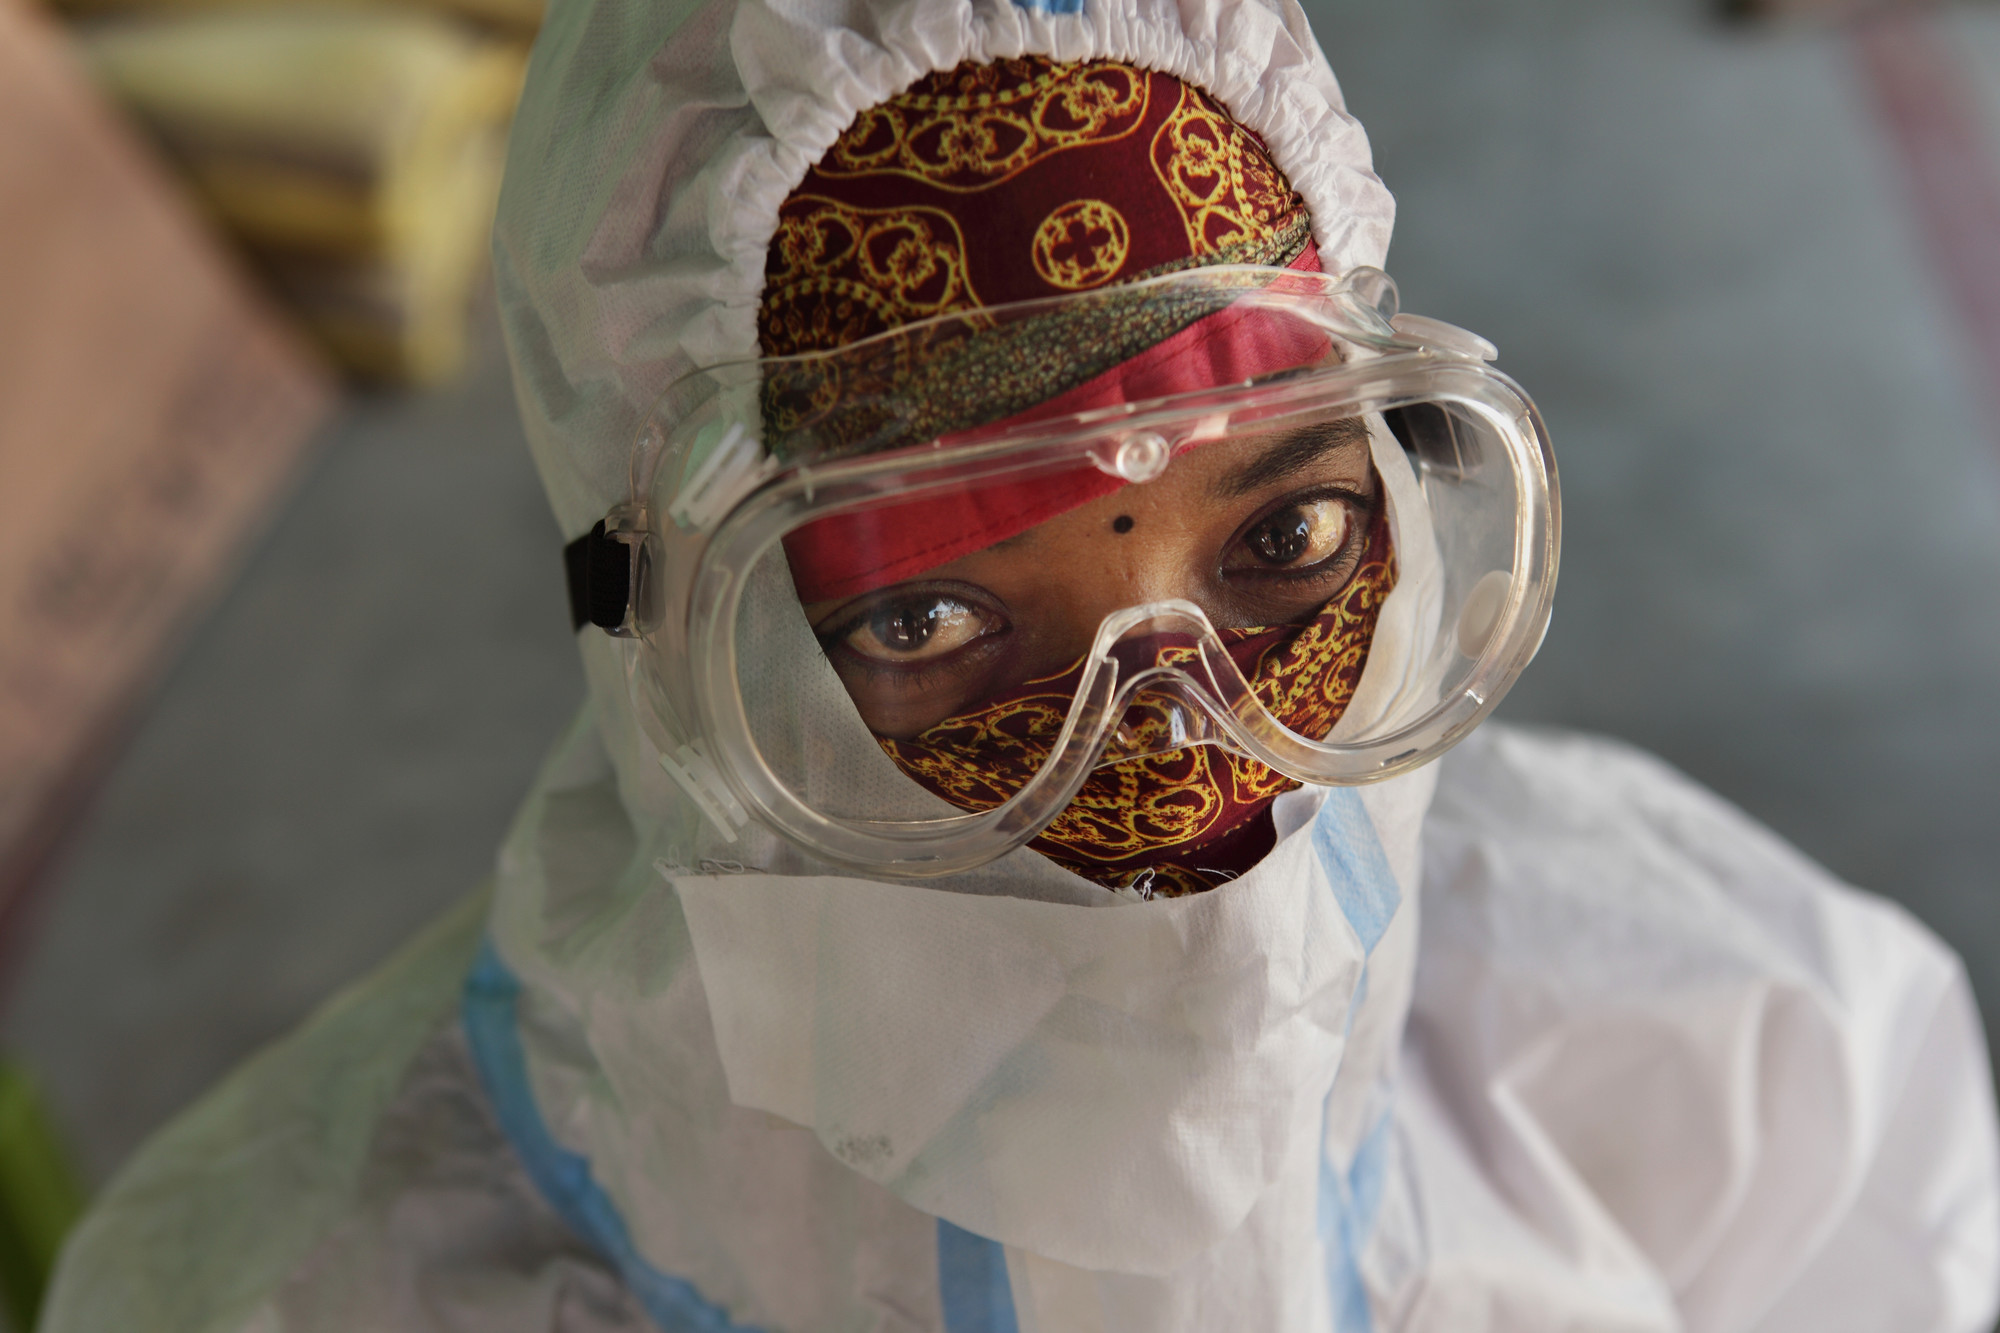 A health care worker in PPE.